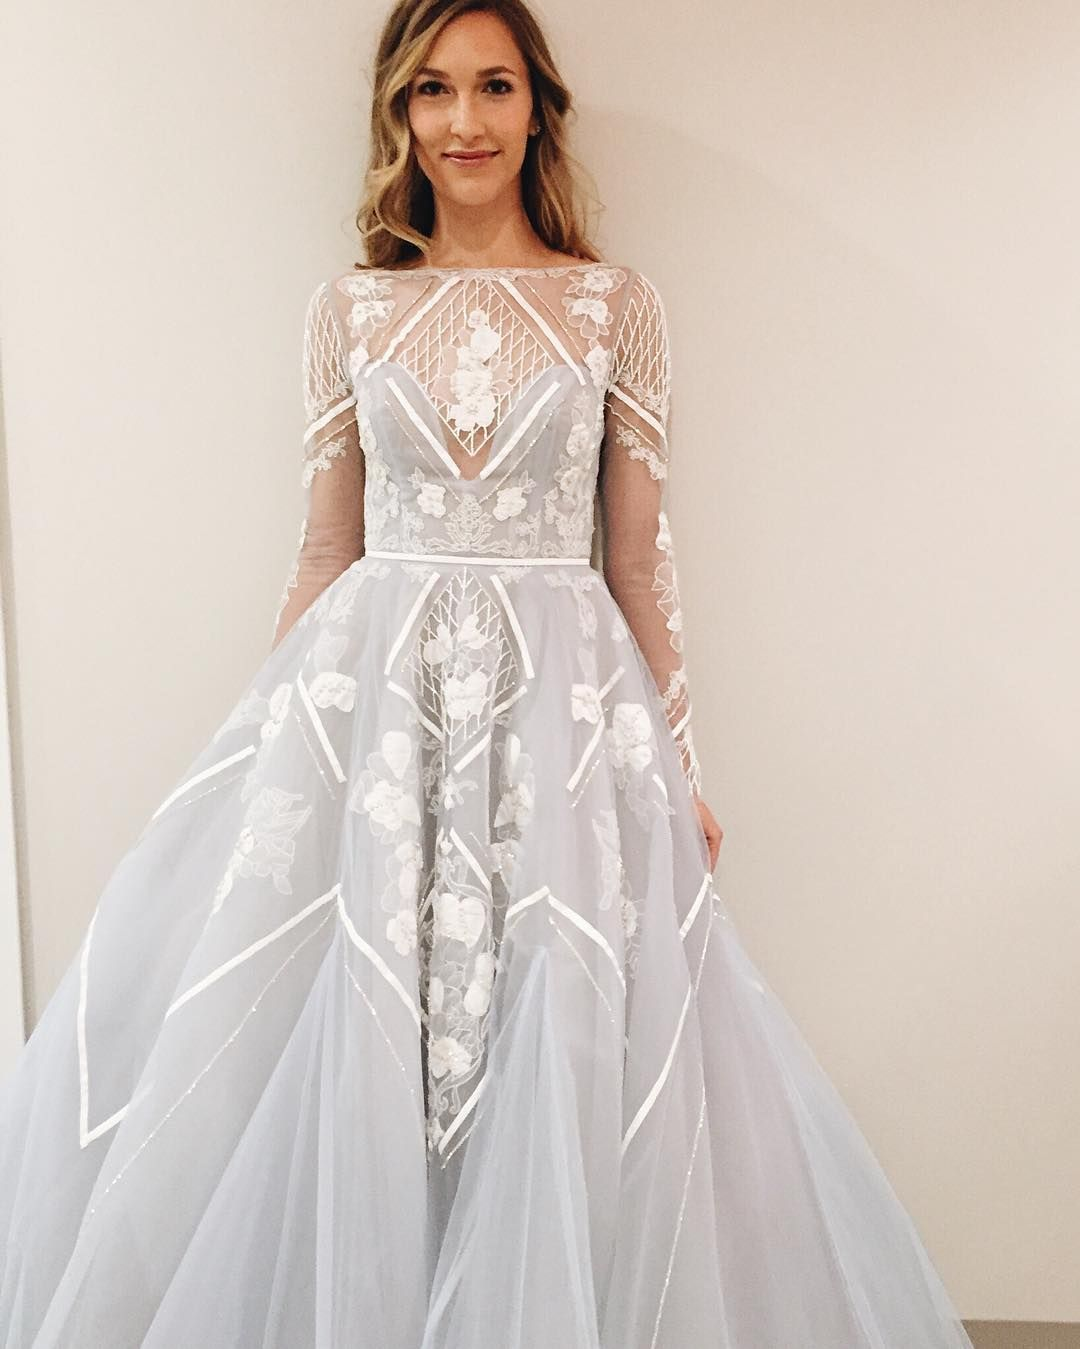 A Be Bridal Shop On Instagram This Blue Beauty Hayleypaige Nybfw Wedding Dresses Hayley Paige Wedding Dress Beautiful Wedding Dresses